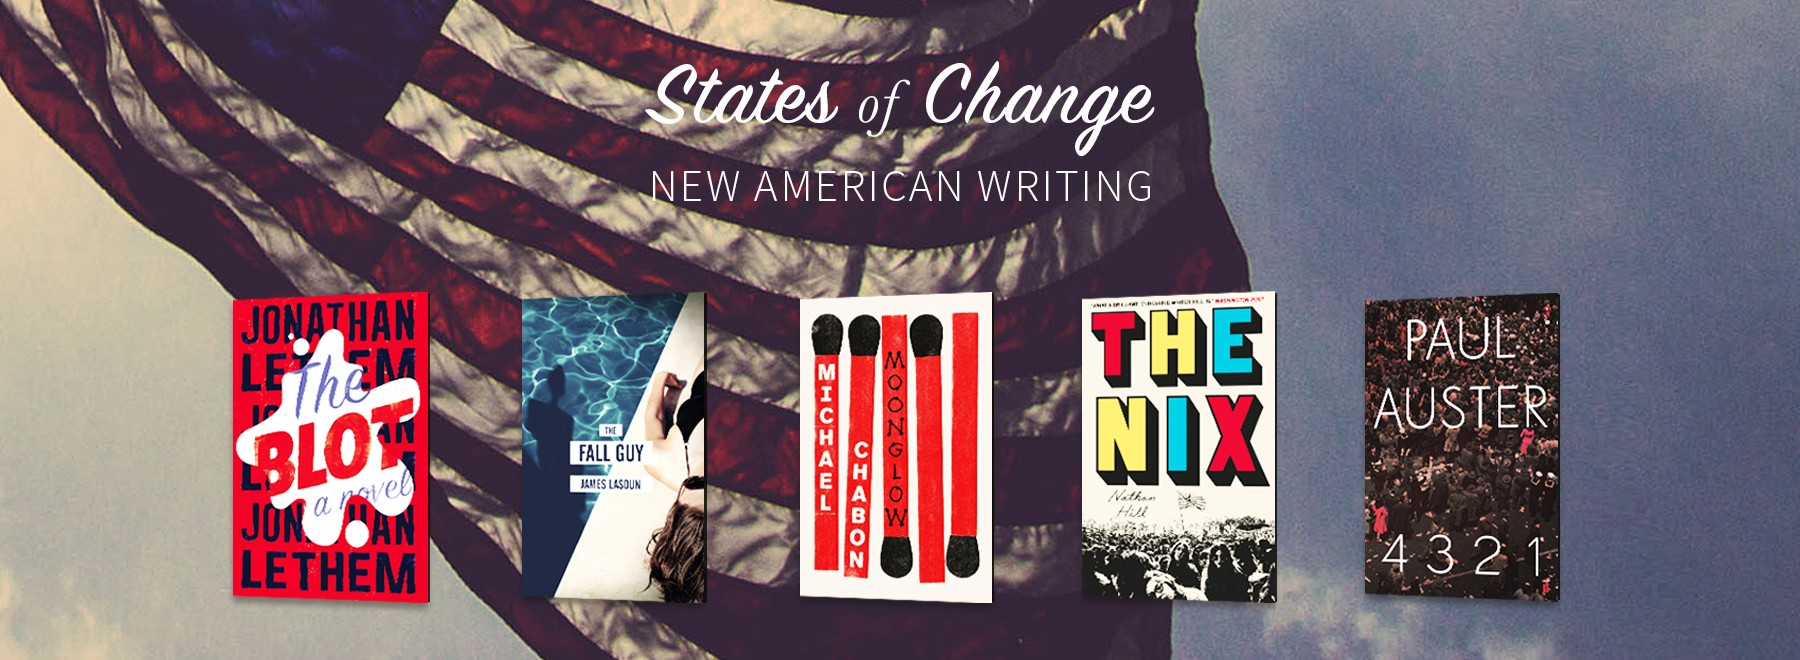 New American Writing